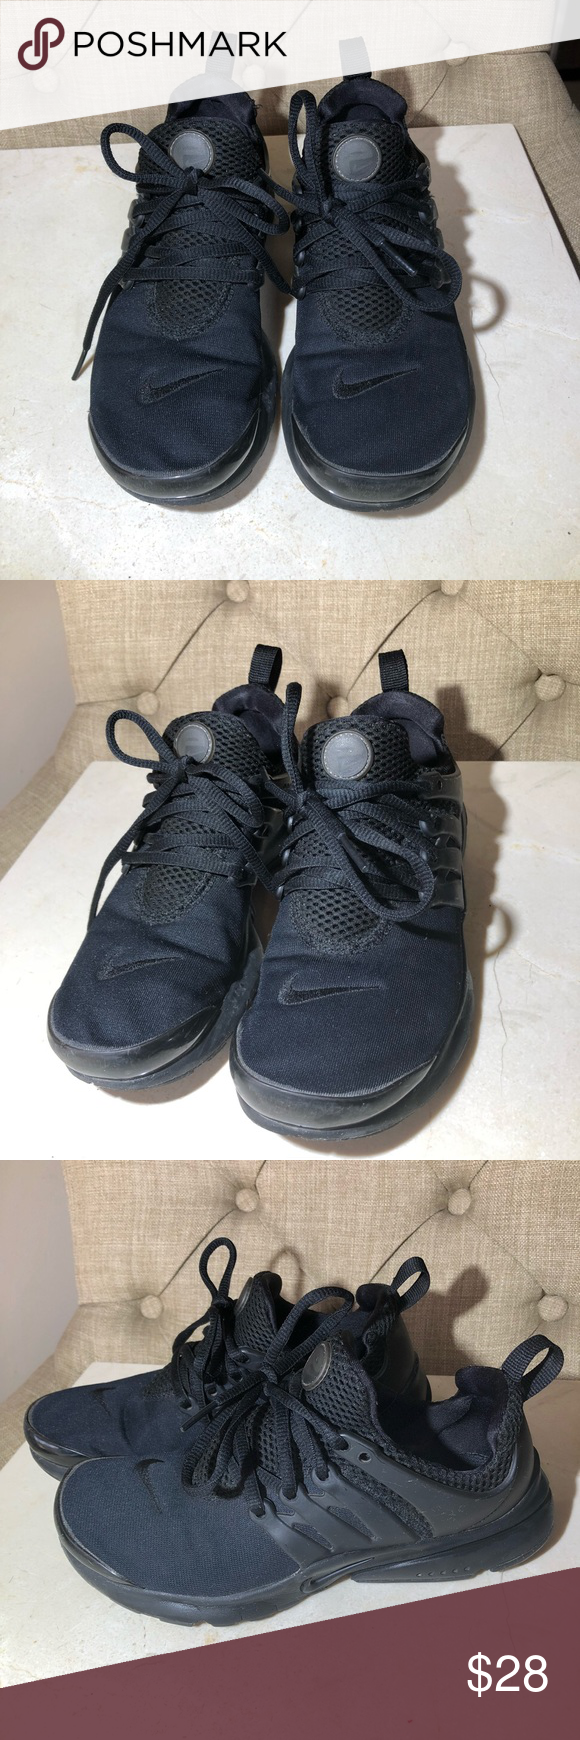 meet 9aff8 a0515 NIKE Presto BLACK✨ All black Nike presto. Minor scratches on tip of shoes  gently used. Super cute! Perfect for the gym or an athletic outfit ✨ Nike  Shoes ...